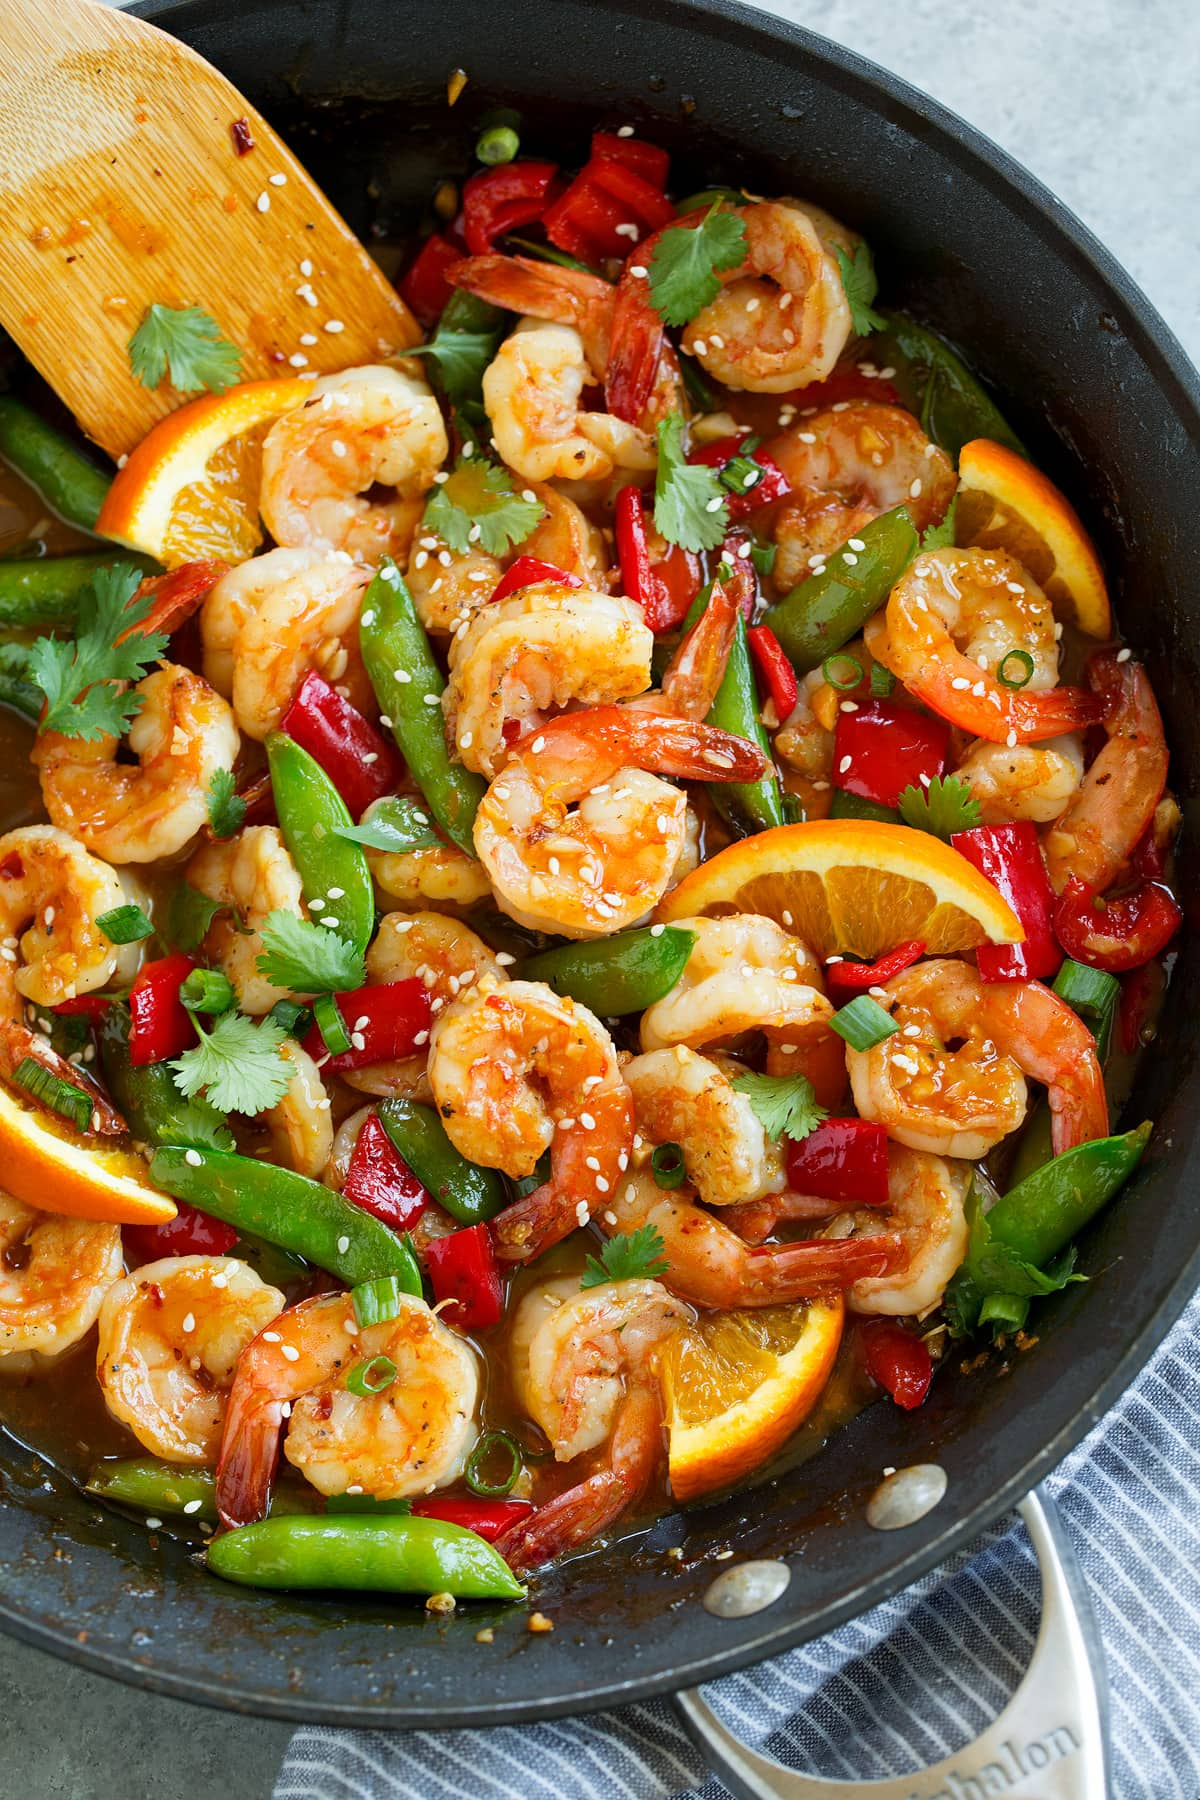 https://www.cookingclassy.com/wp-content/uploads/2018/07/orange-garlic-shrimp-8.jpg